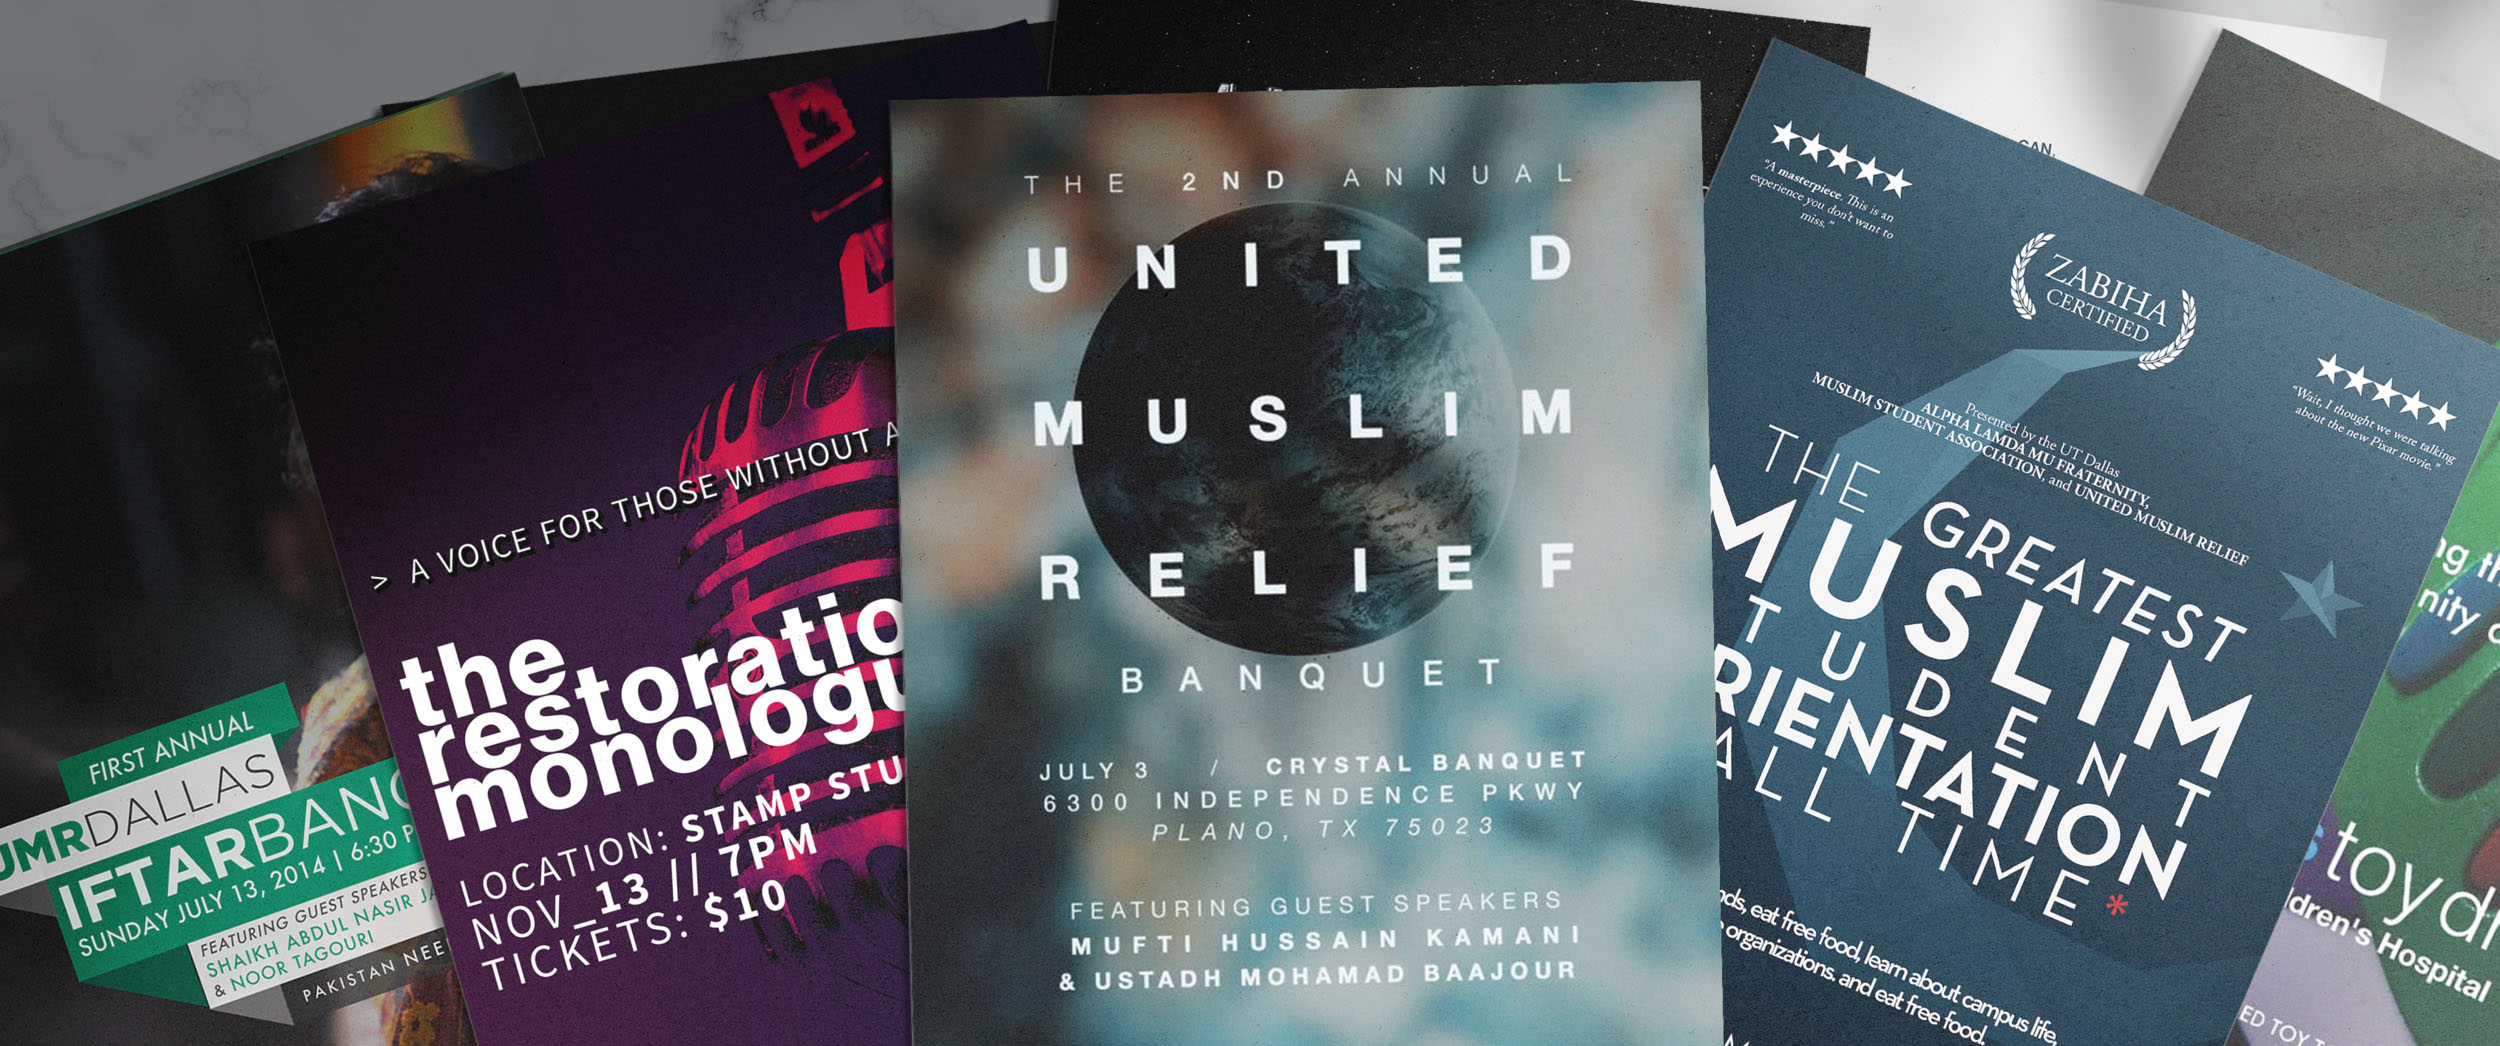 United Muslim Relief - Graphic Design + Campaign Strategy